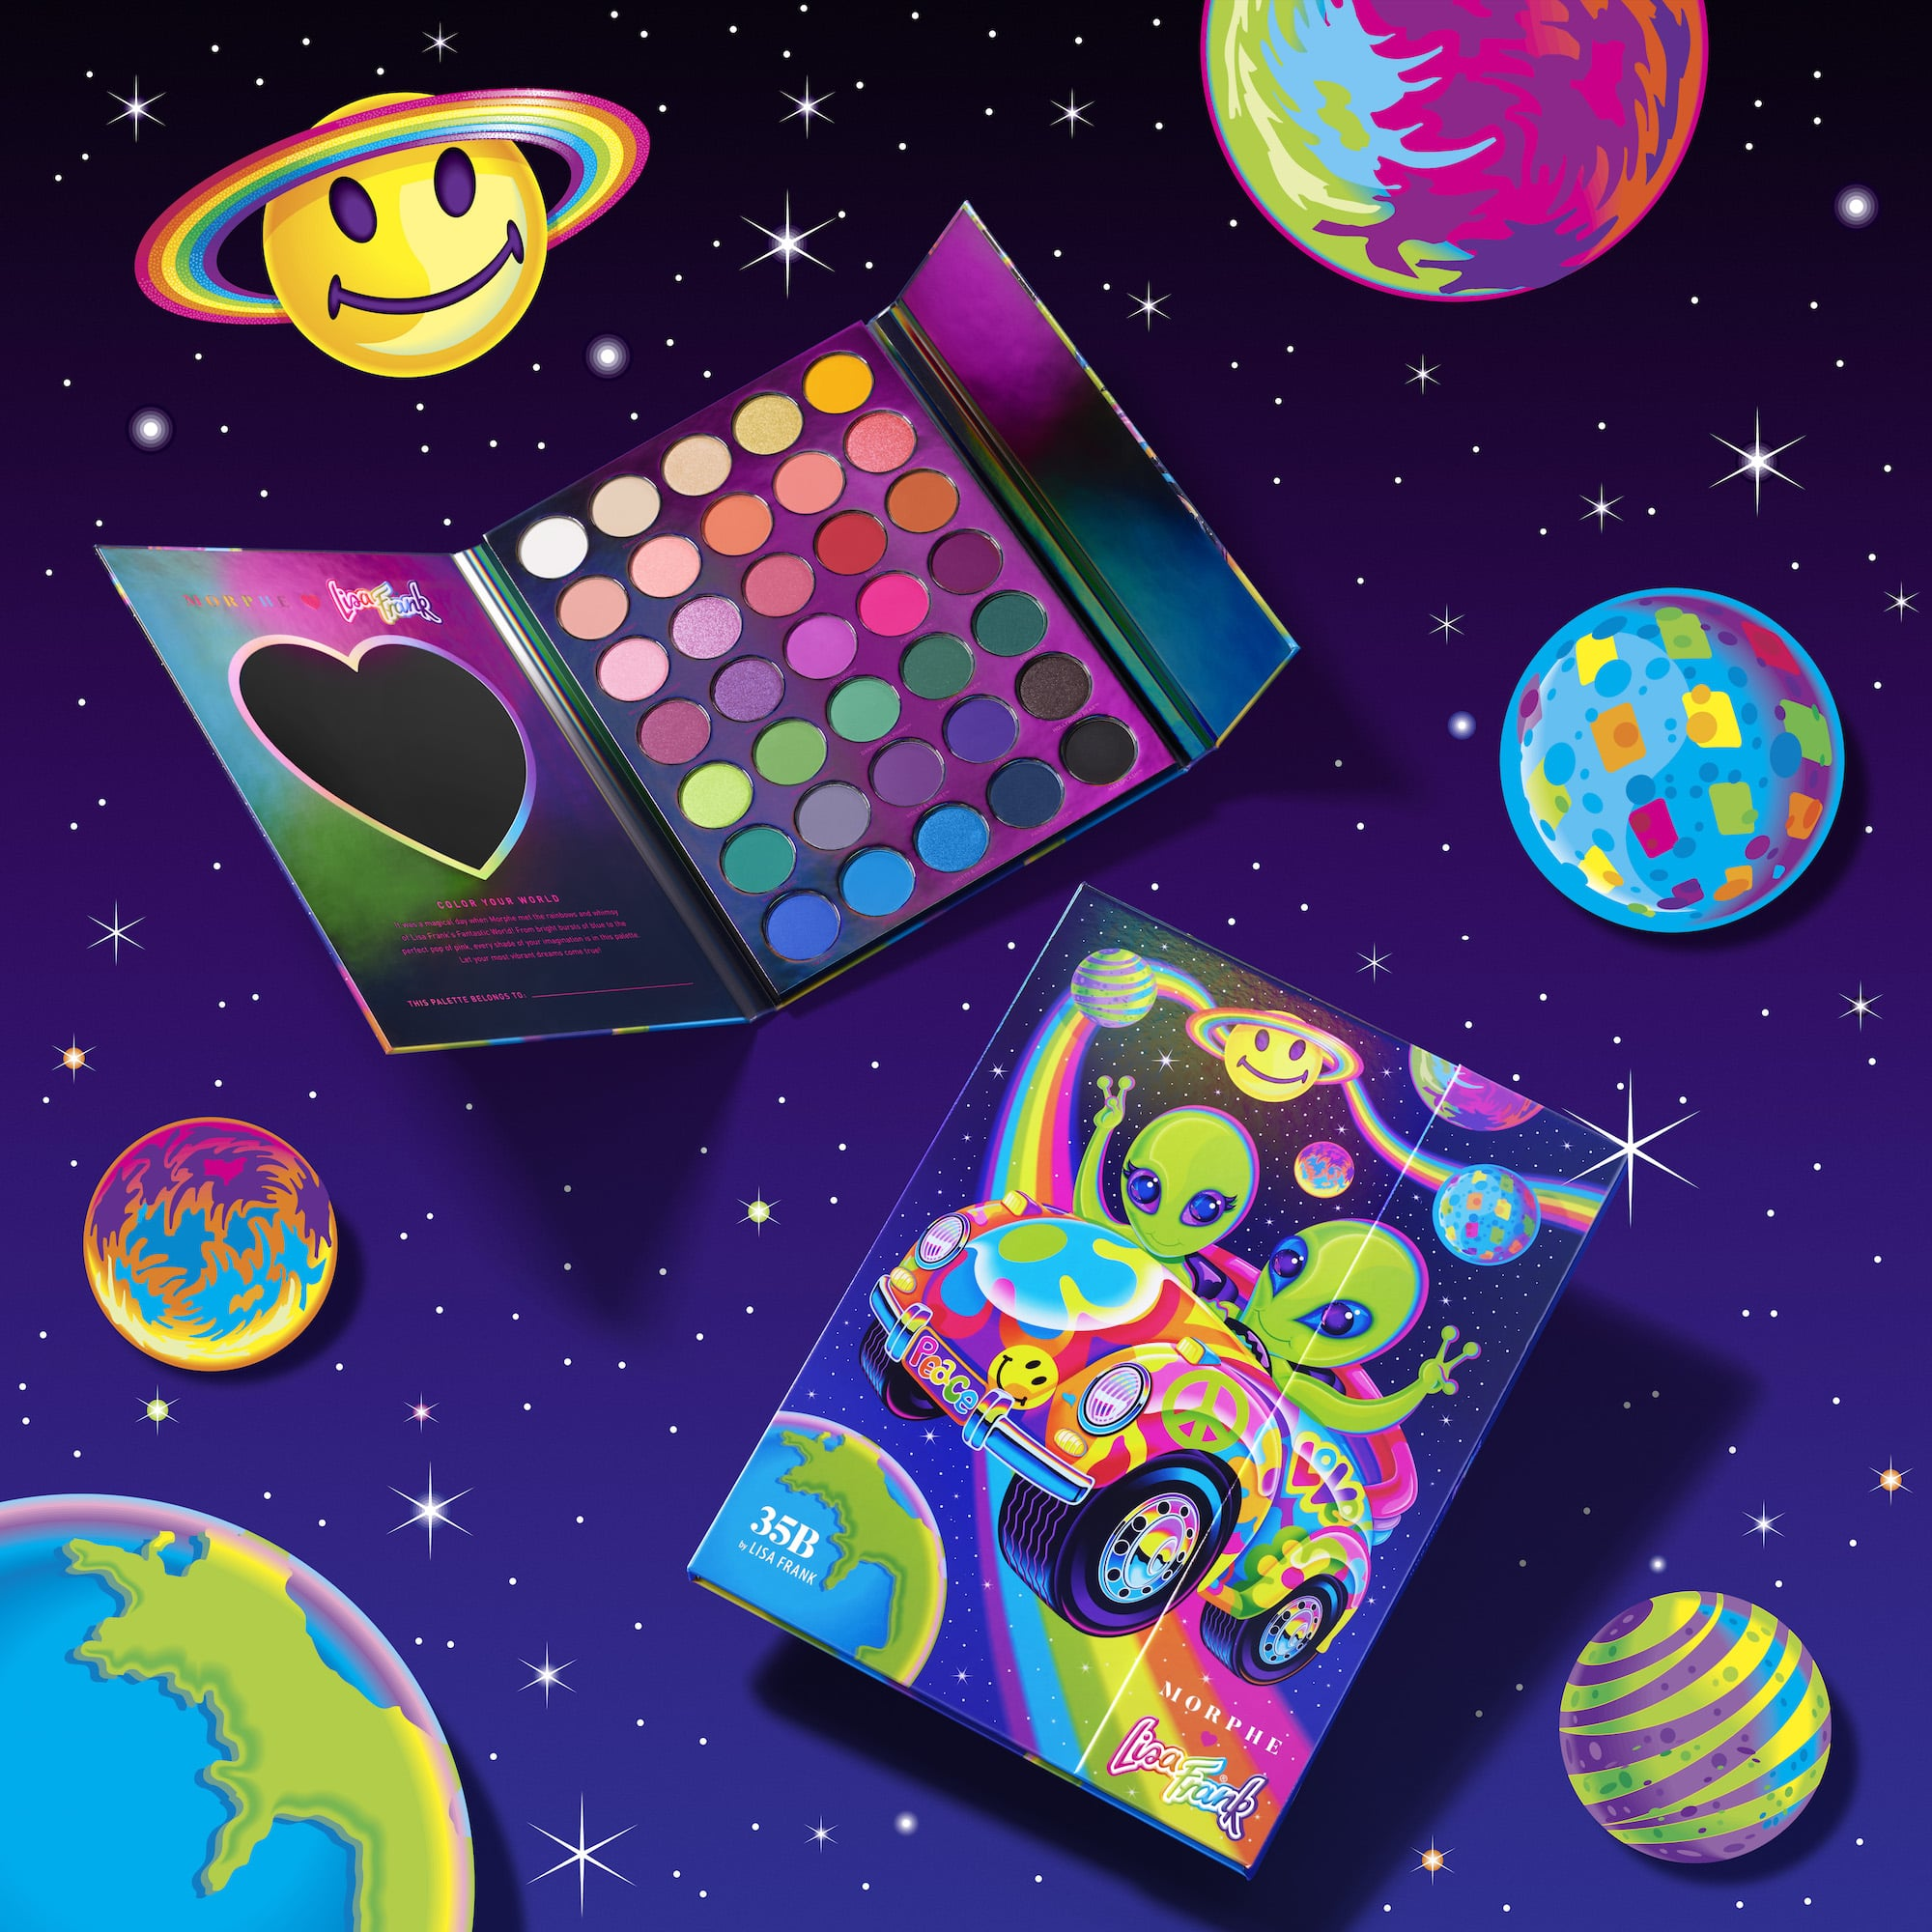 Get A First Look At The Morphe X Lisa Frank Makeup Products Popsugar Beauty When urban outfitters licensed her designs and started carrying a lisa frank line in 2014, the company got permission to film a short. morphe x lisa frank makeup